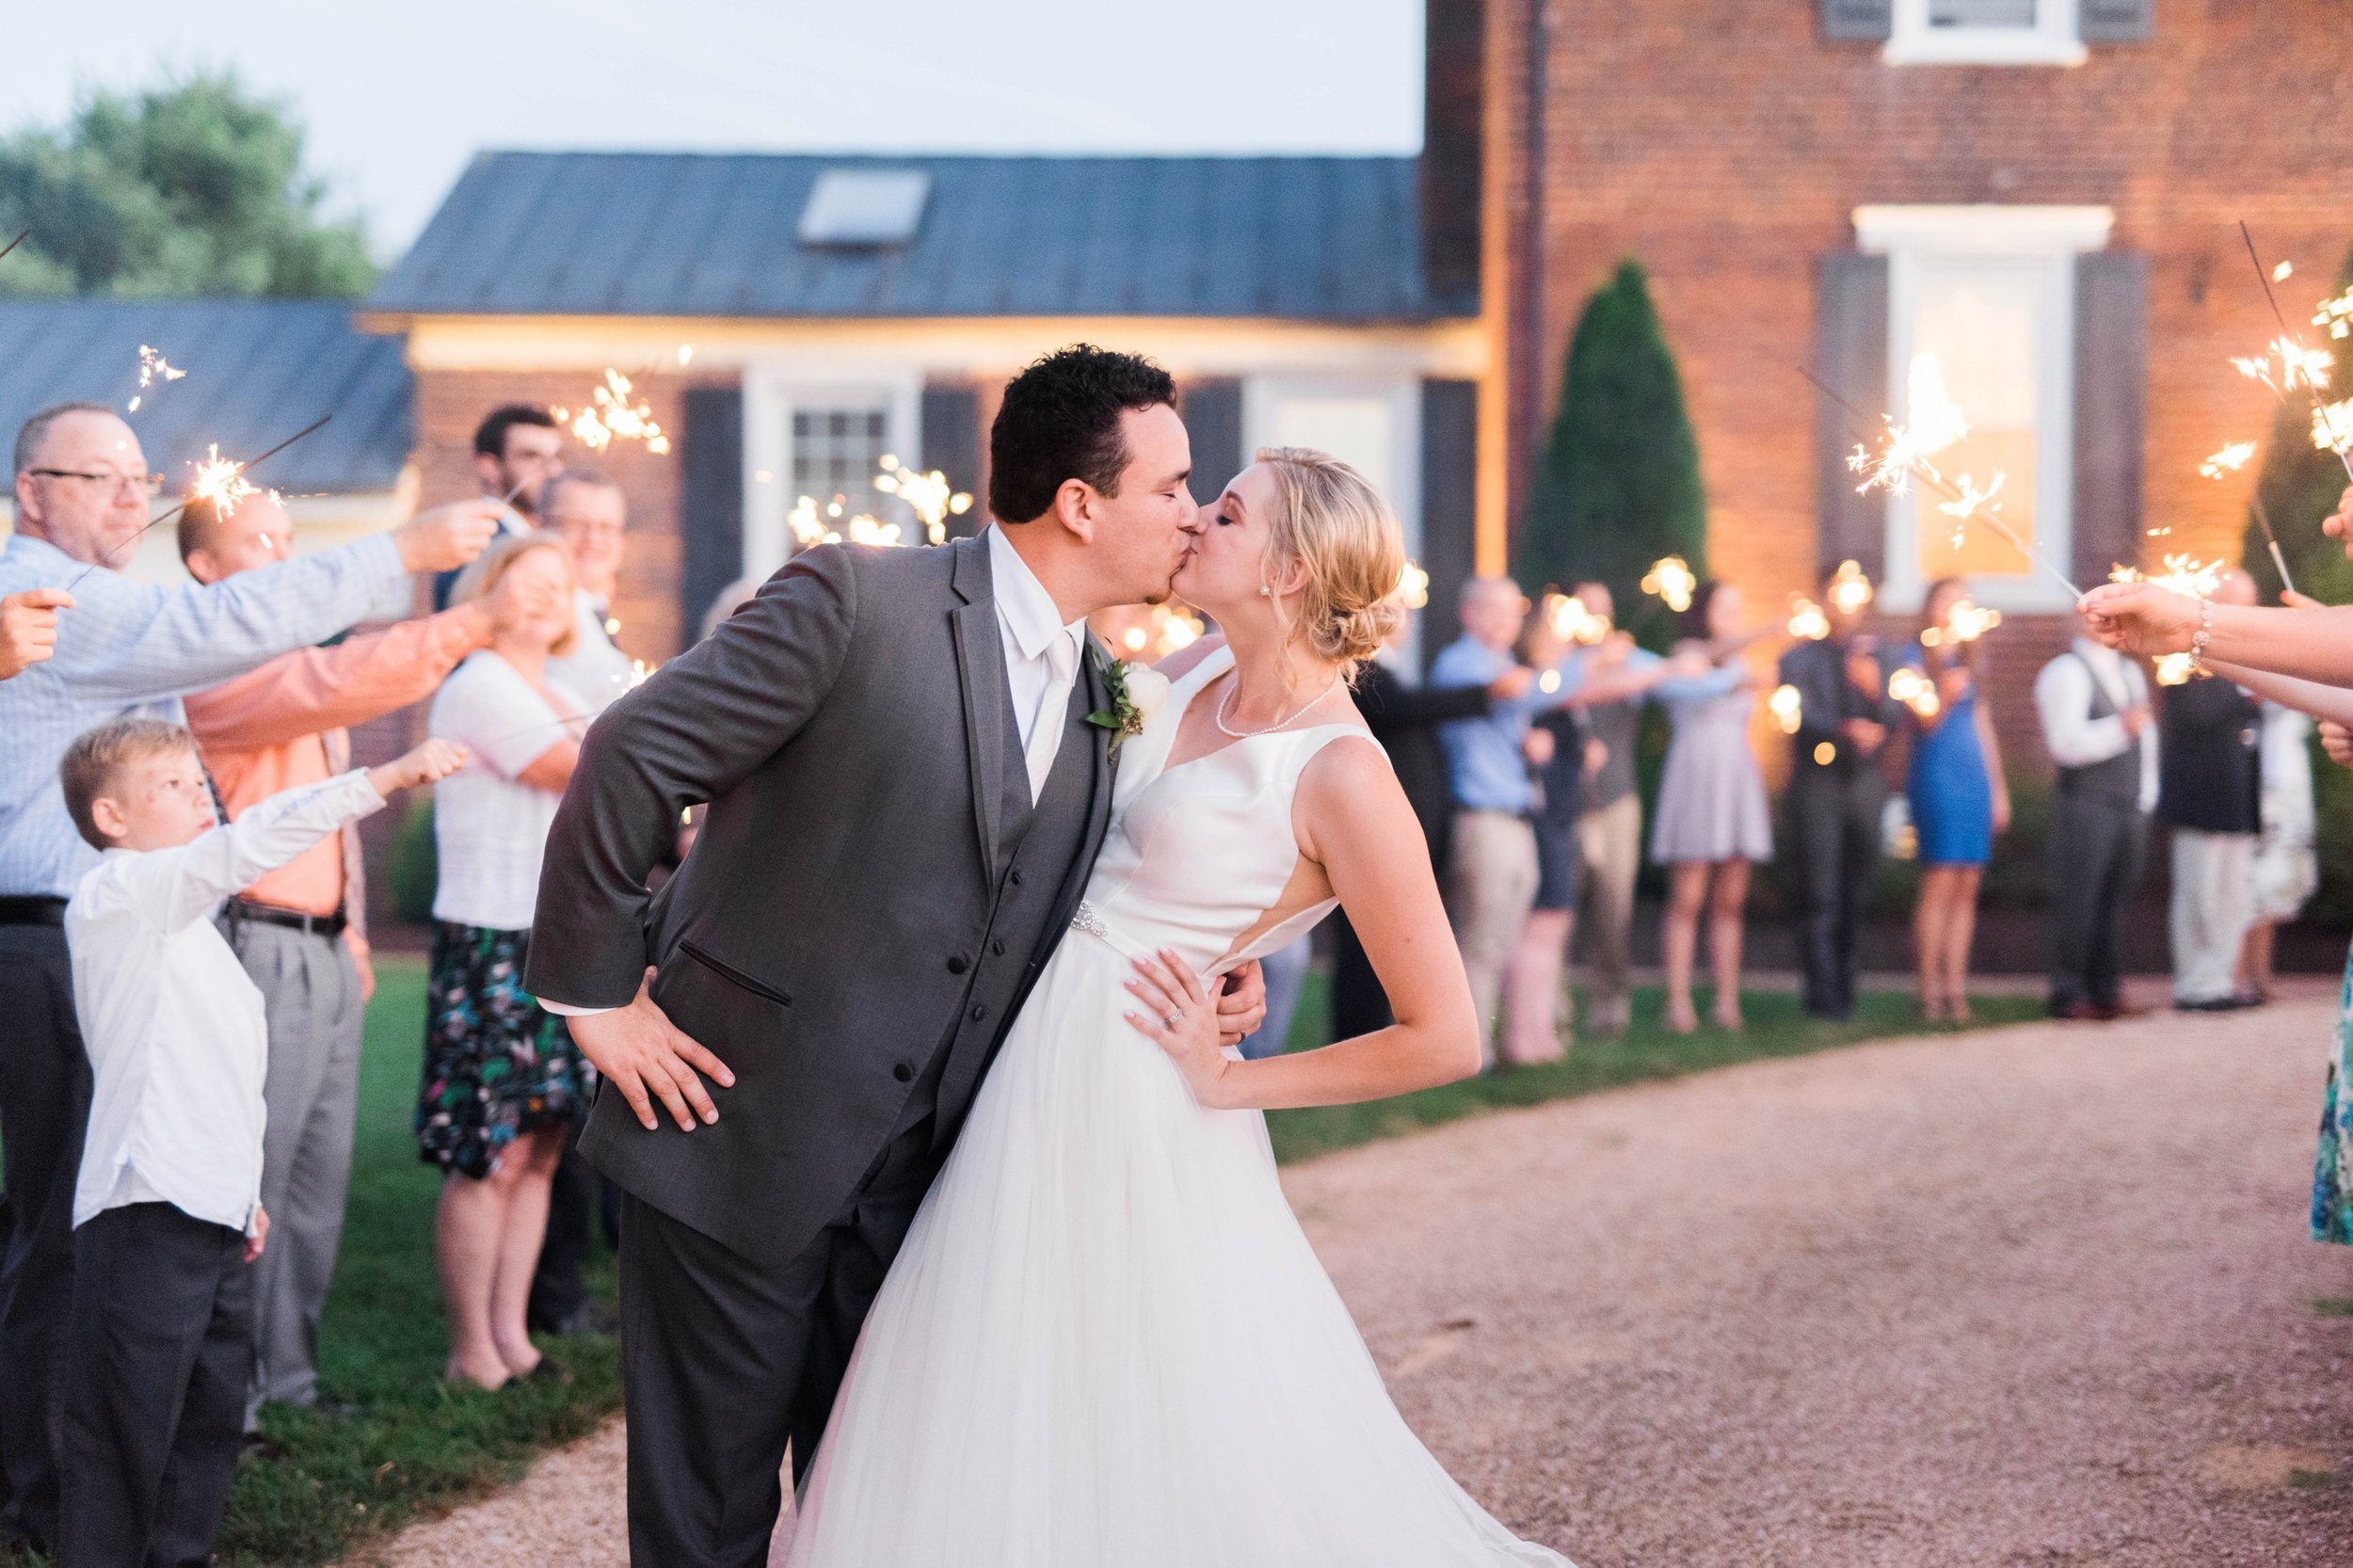 westmanorestate_entwinedevents_lynchburgweddingphotographer_Virginiaweddingphotographer_kateyam 18.jpg